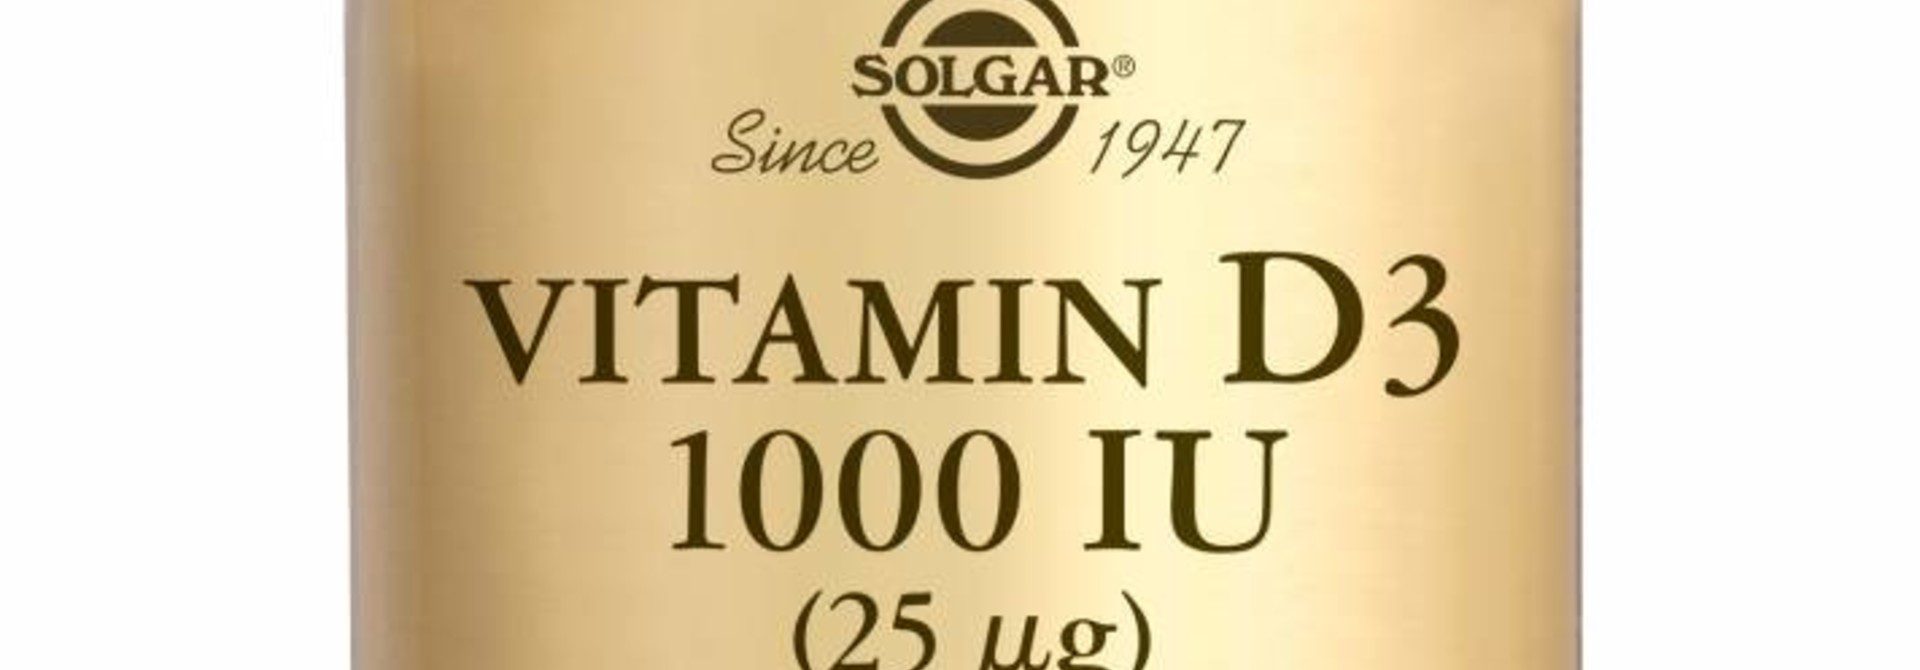 Vitamin D-3 1000 IU/25 µg 250 softgels